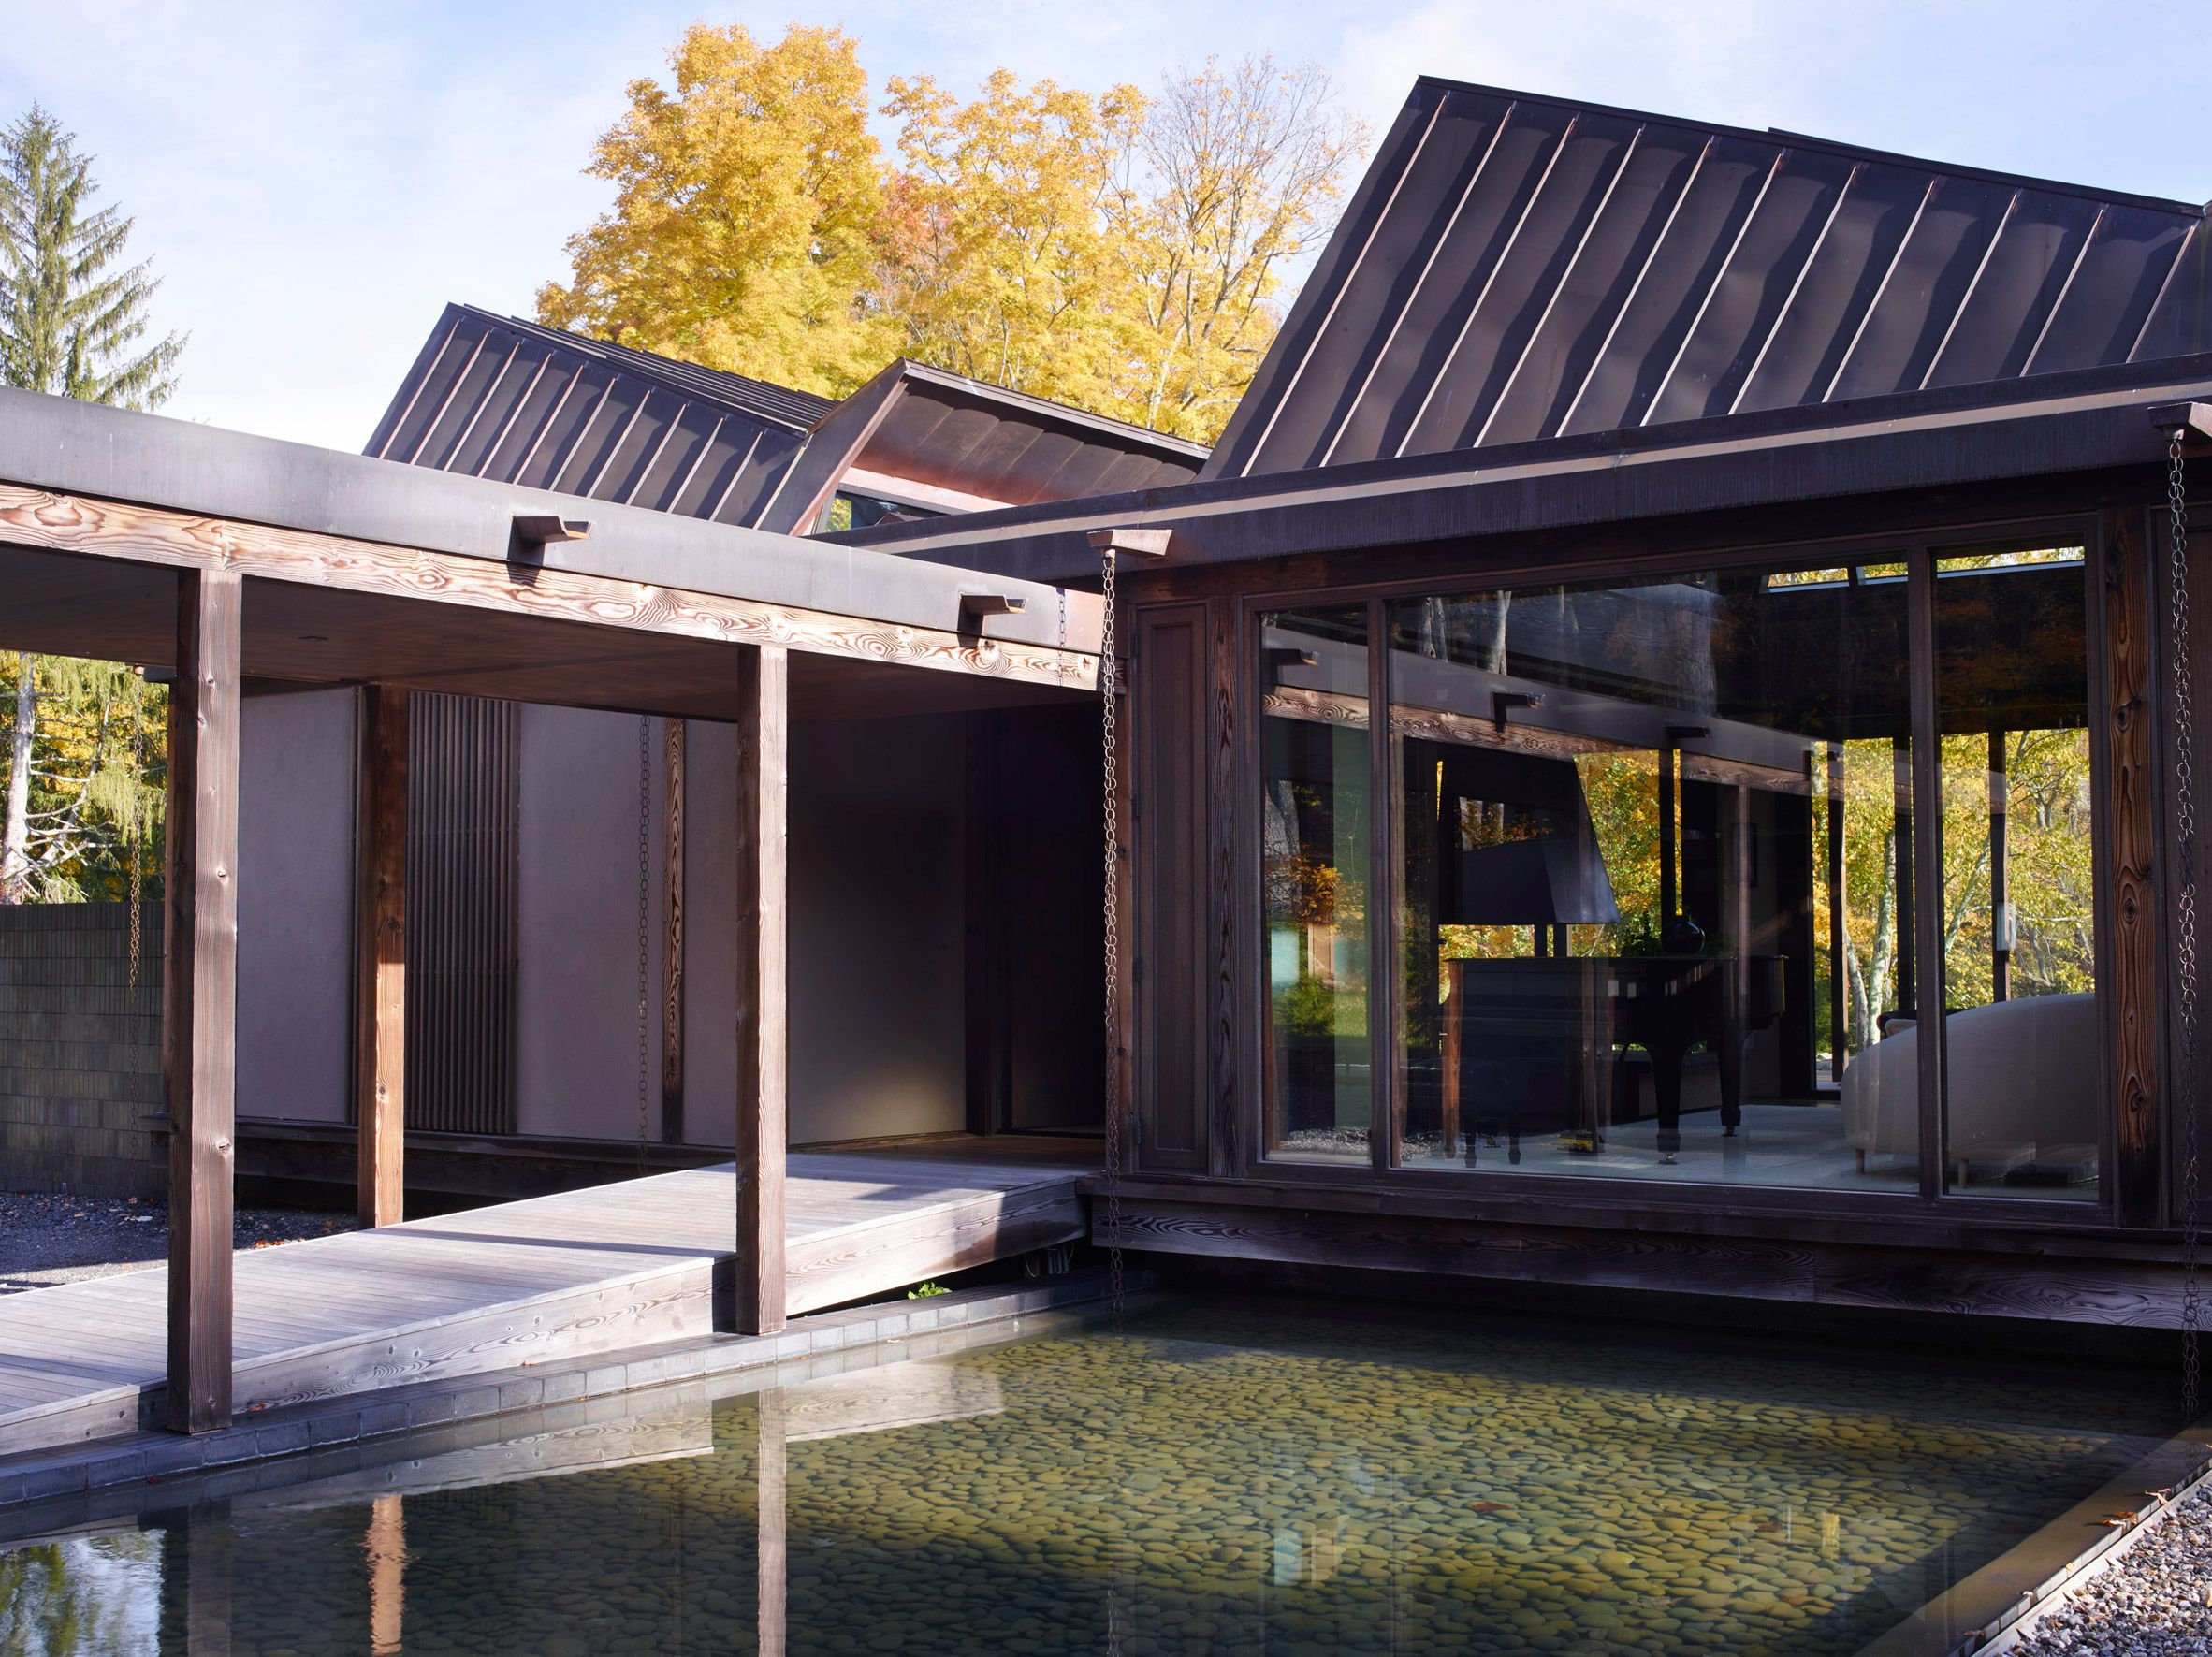 Japanese Architectural Principles Informed The Design Of This